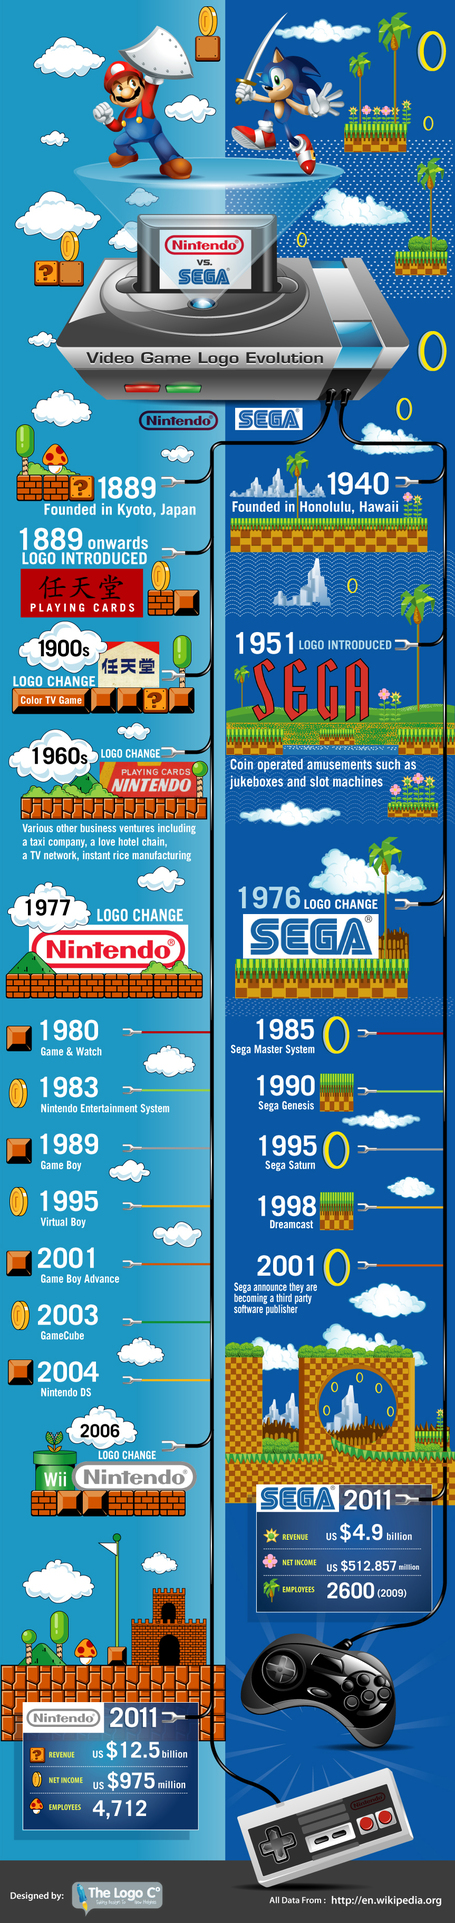 Nintendo vs Sega: Video Game Logo Evolution | MarketingHits | Scoop.it